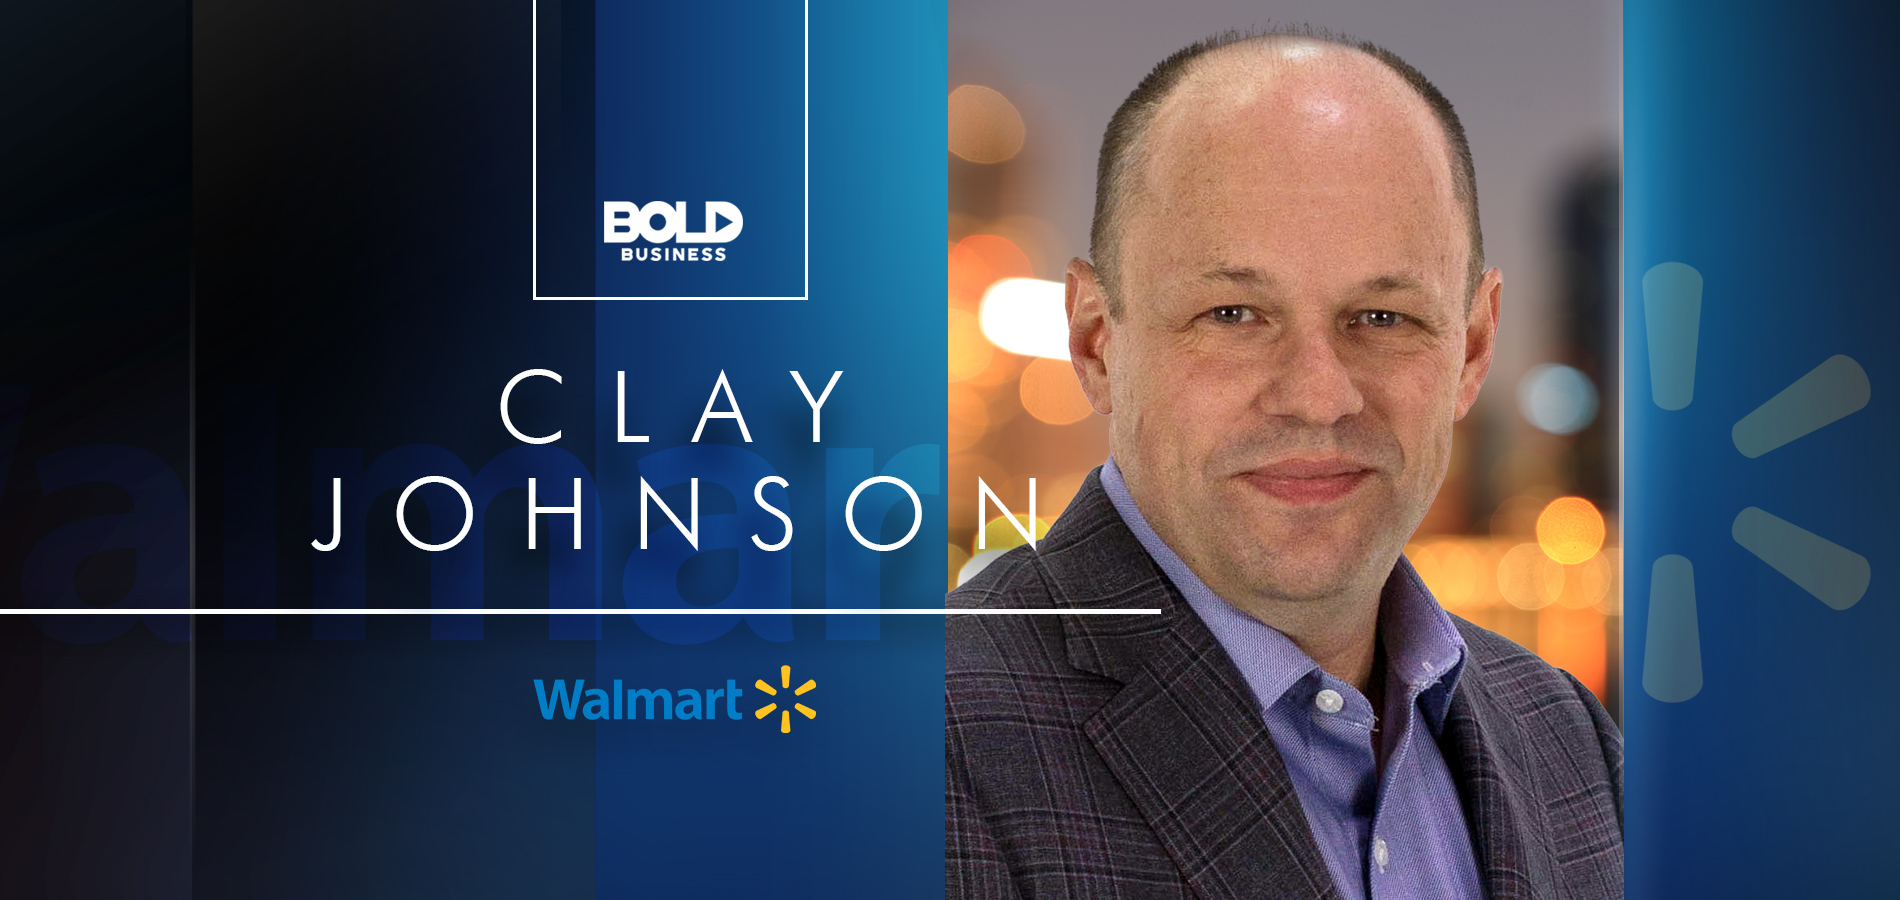 Clay Johnson, clay johnson in a dark suit with the logo of walmart under his name